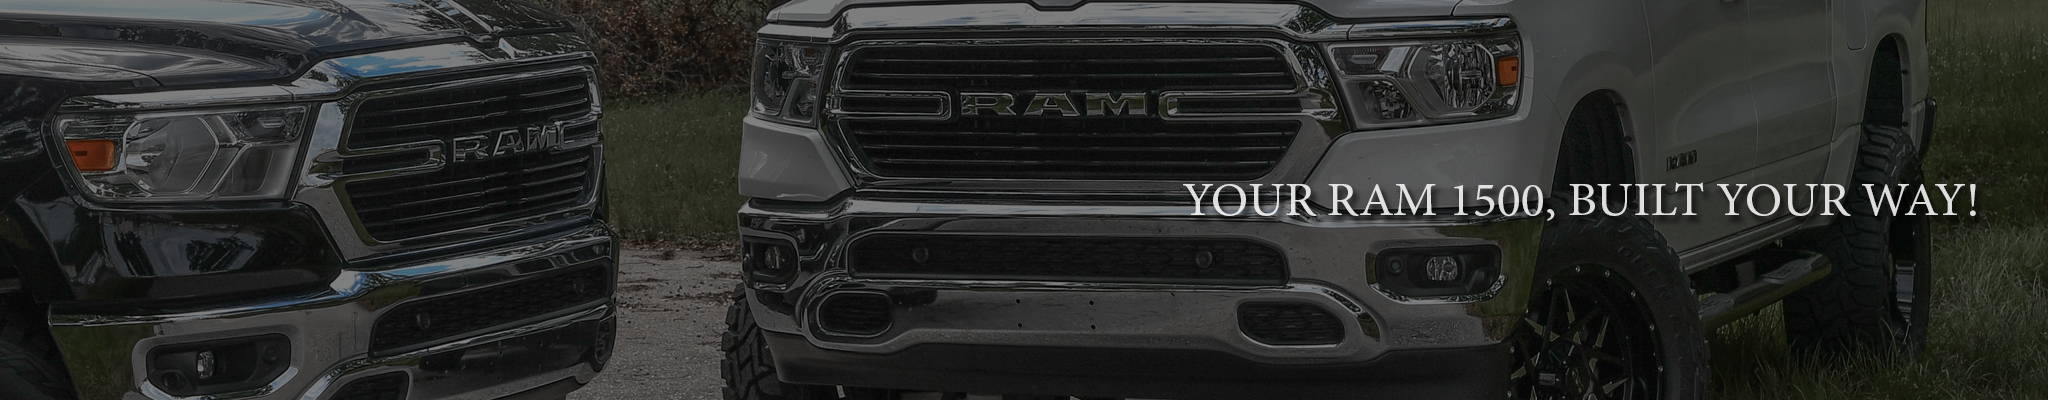 3C Truck Conversions Your Dodge RAM 1500 Truck Built Your Way! Customize your Build Here.